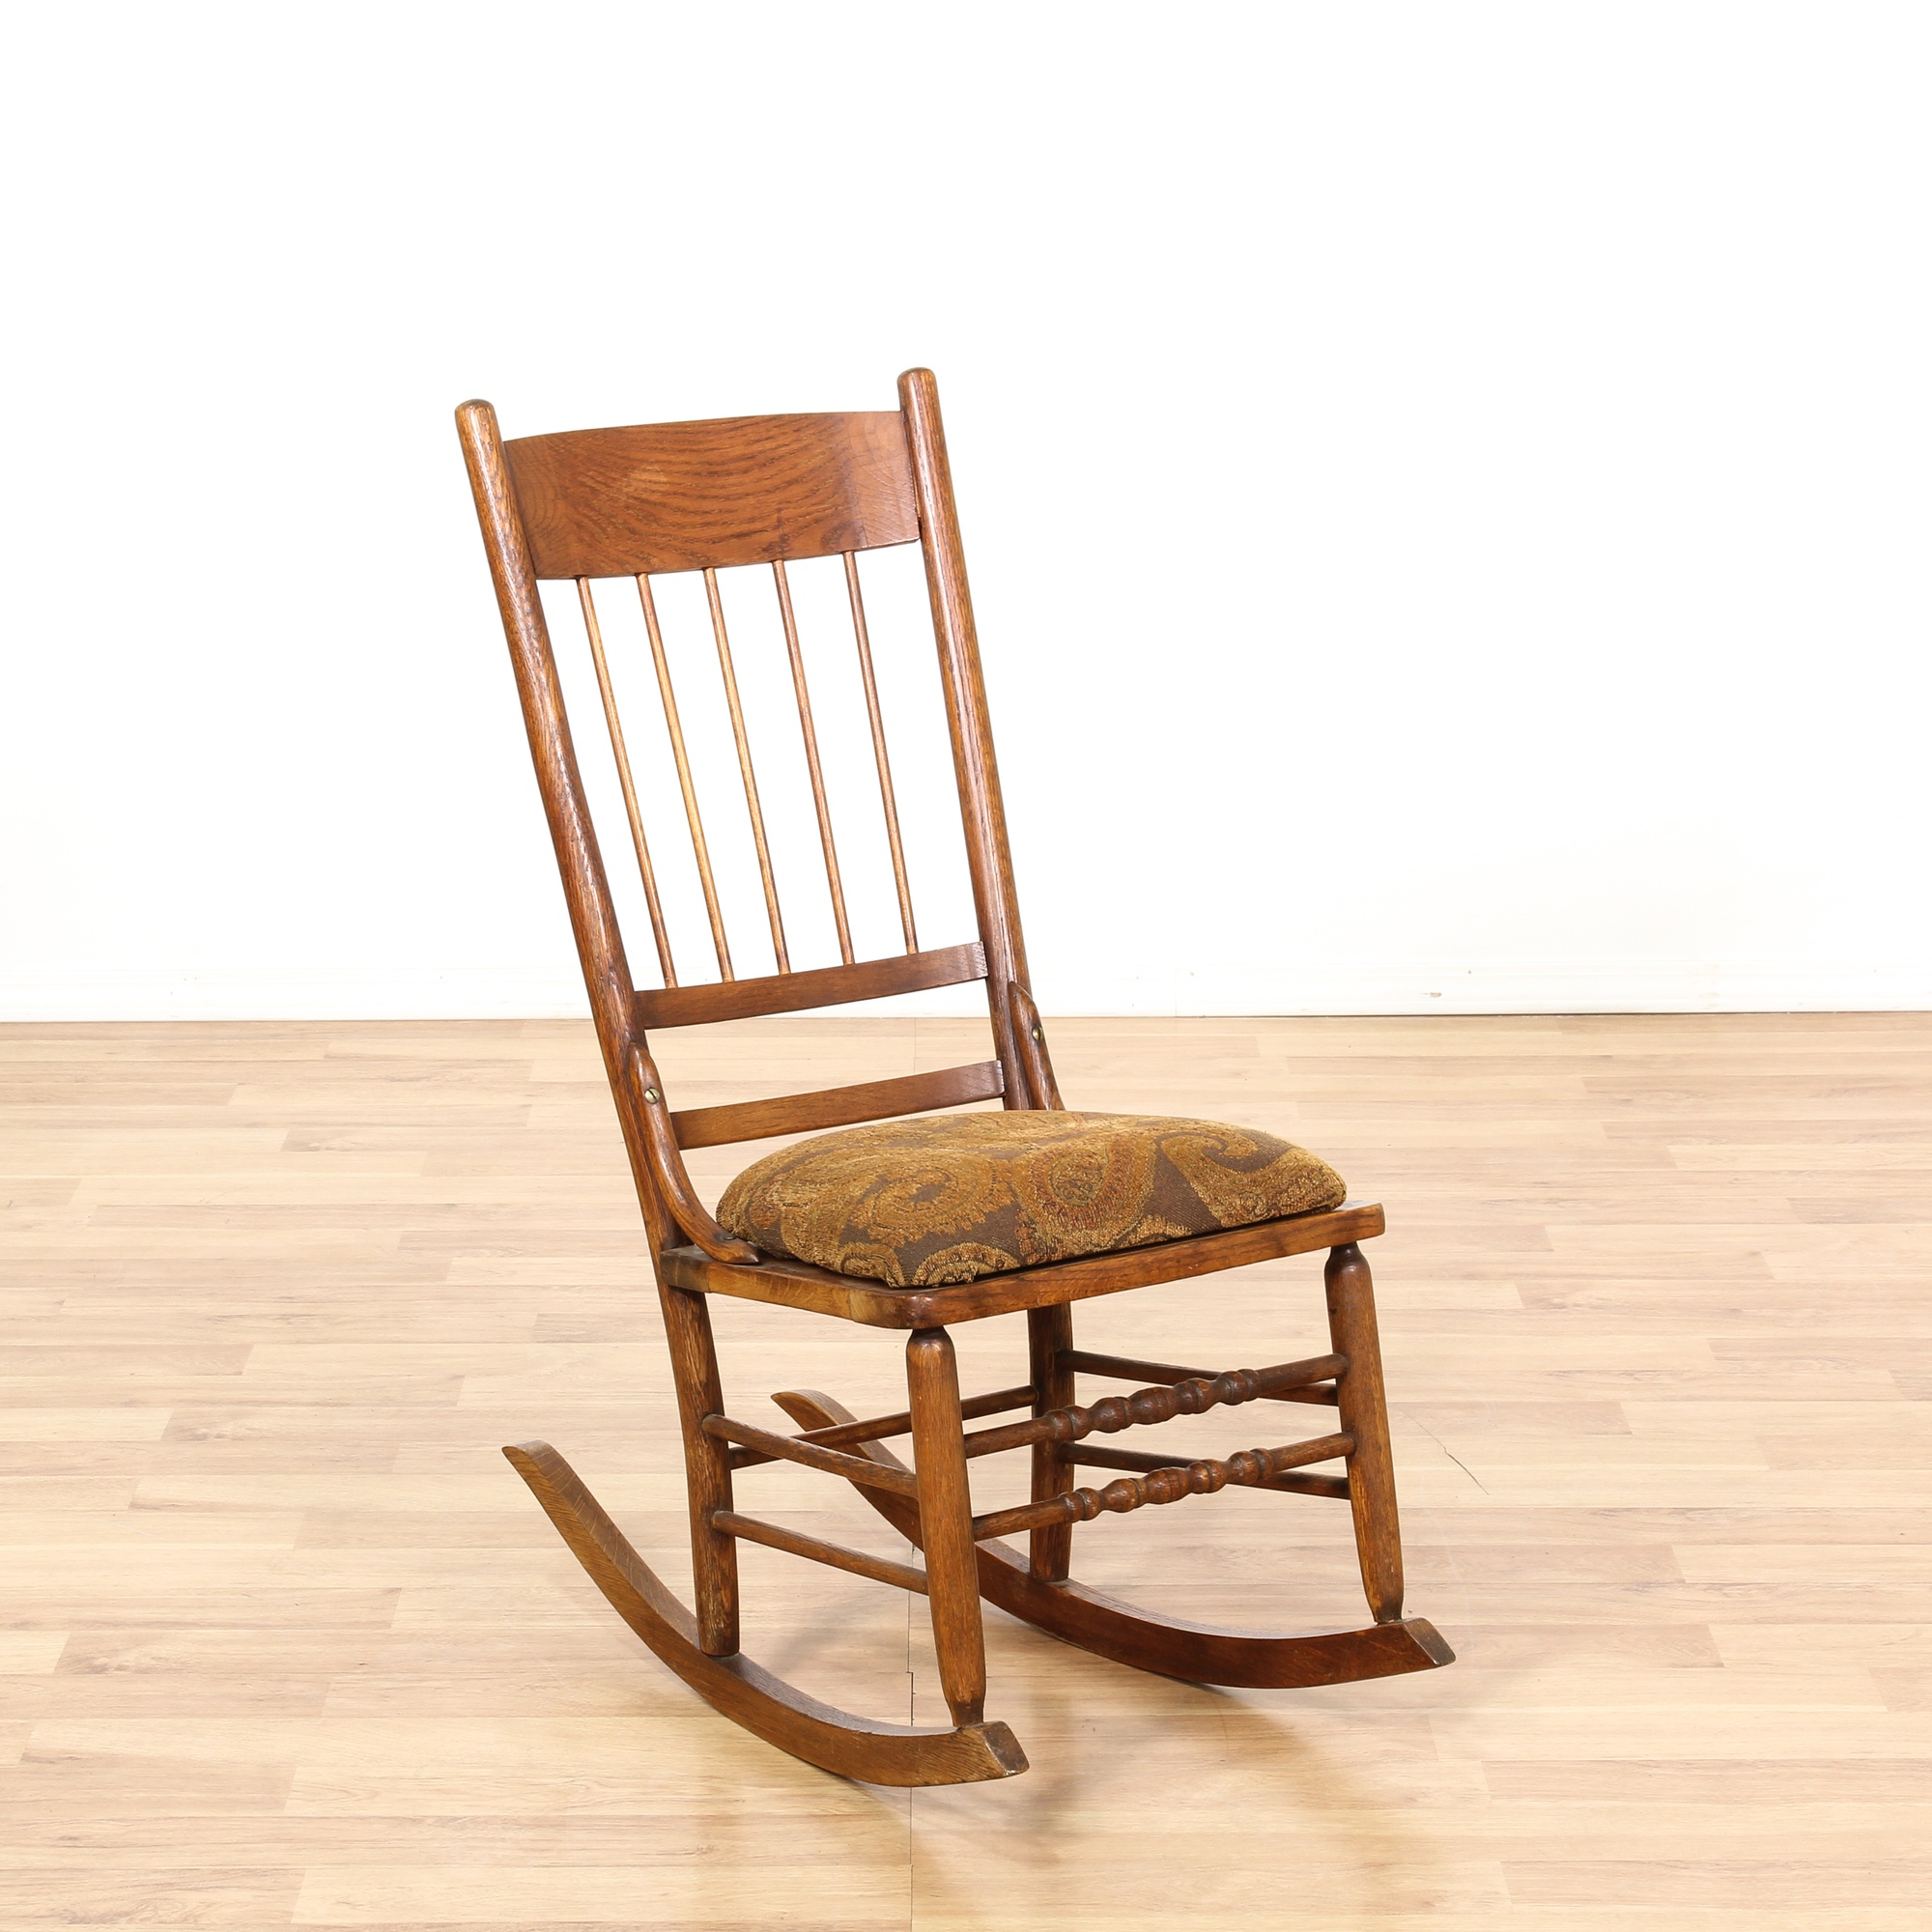 Antique country chic oak rocking chair loveseat vintage